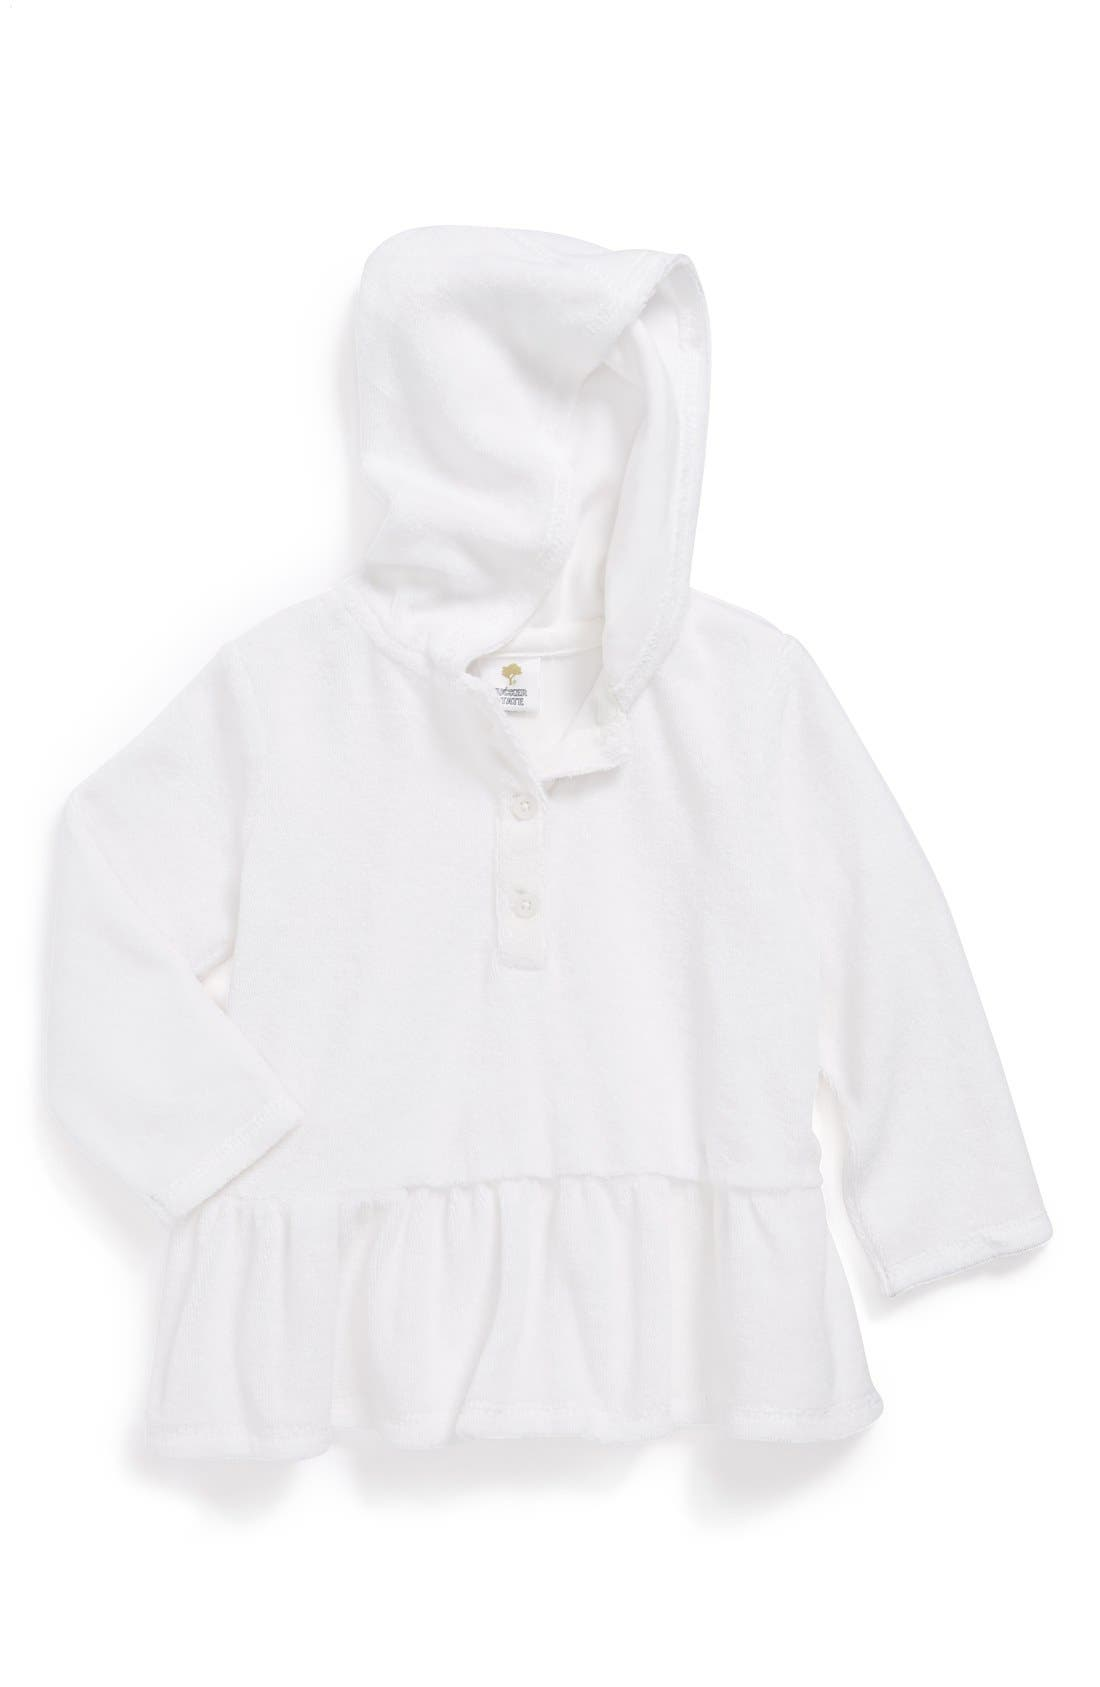 Main Image - Tucker + Tate Hooded Terry Cloth Cover-Up (Baby Girls)